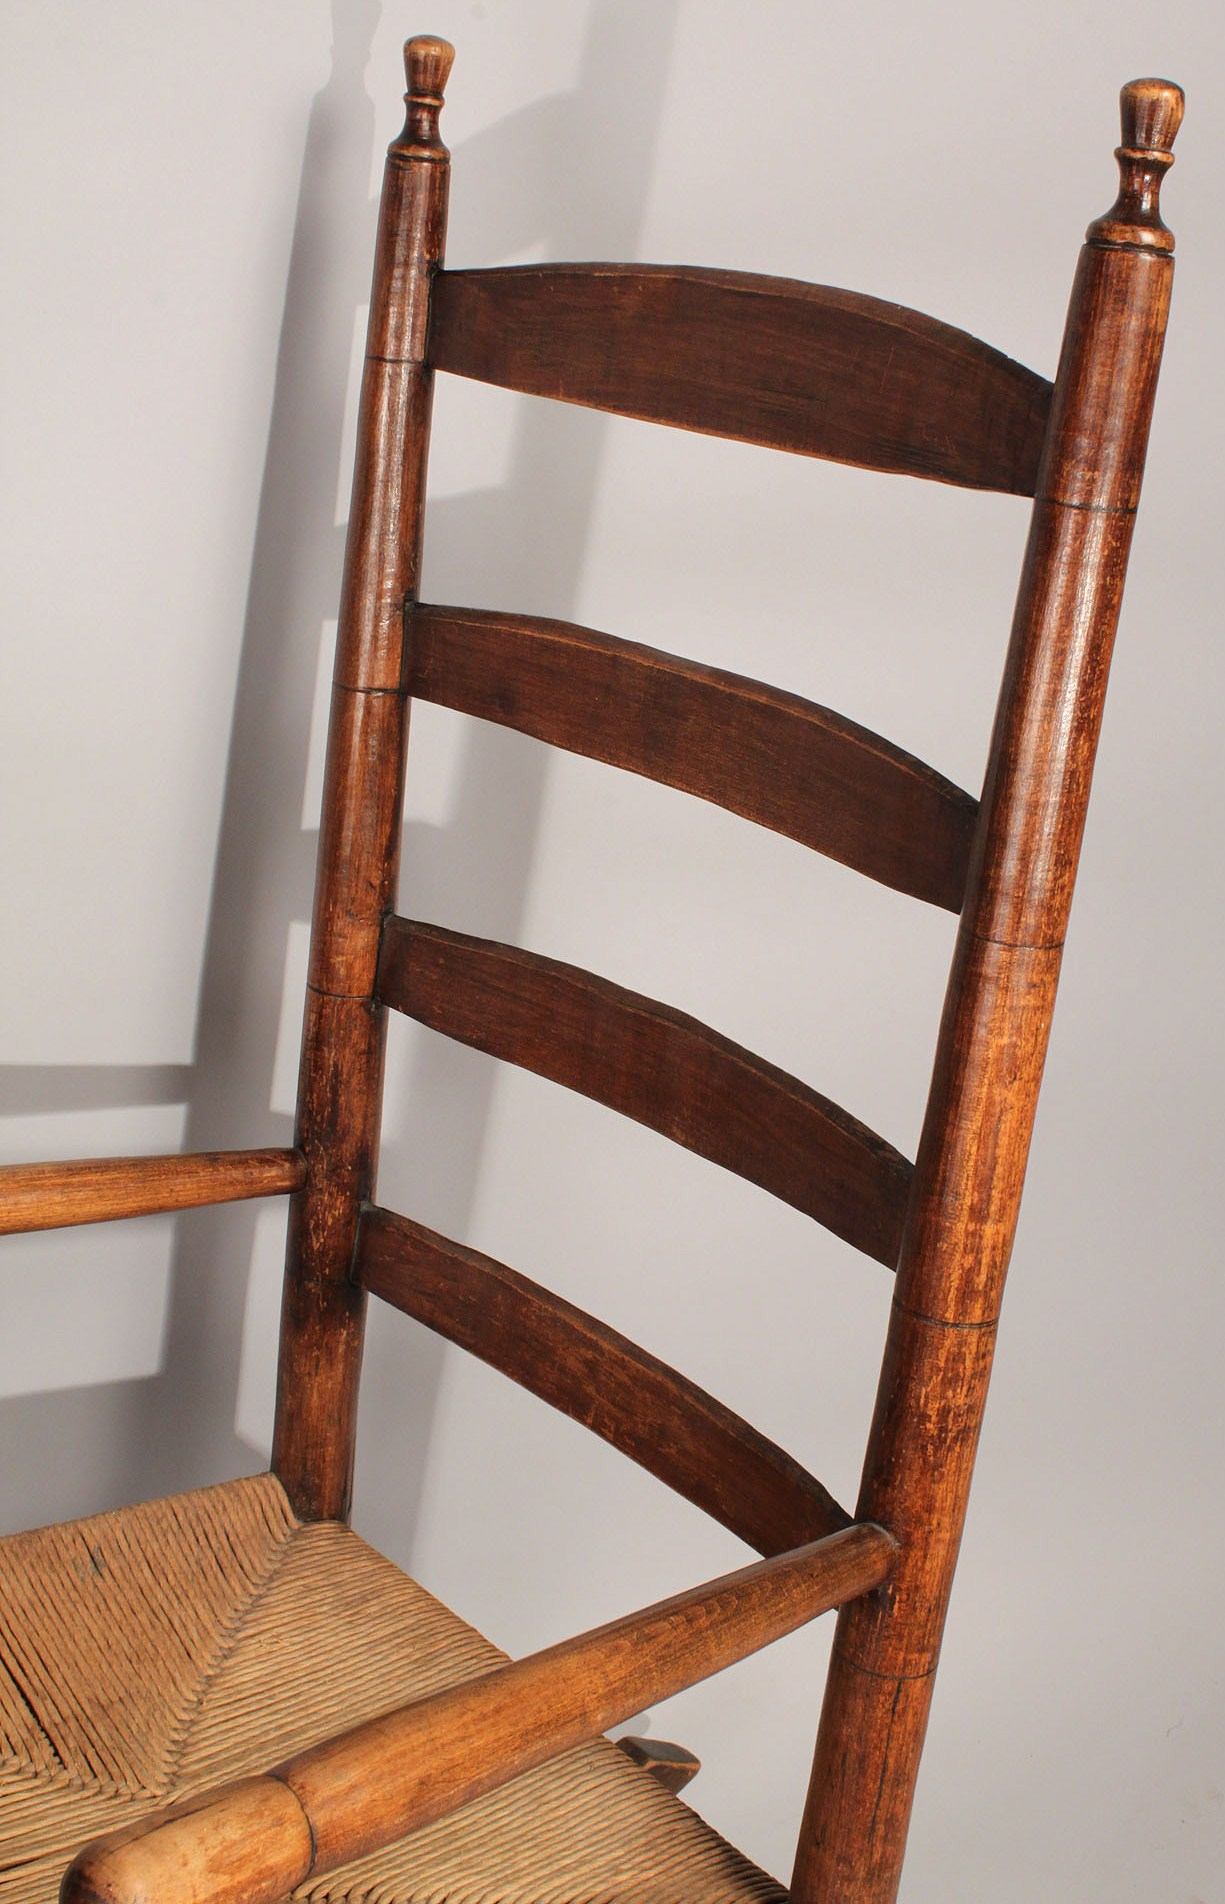 Lot 449 2 Rocking chairs Shaker and Tennessee